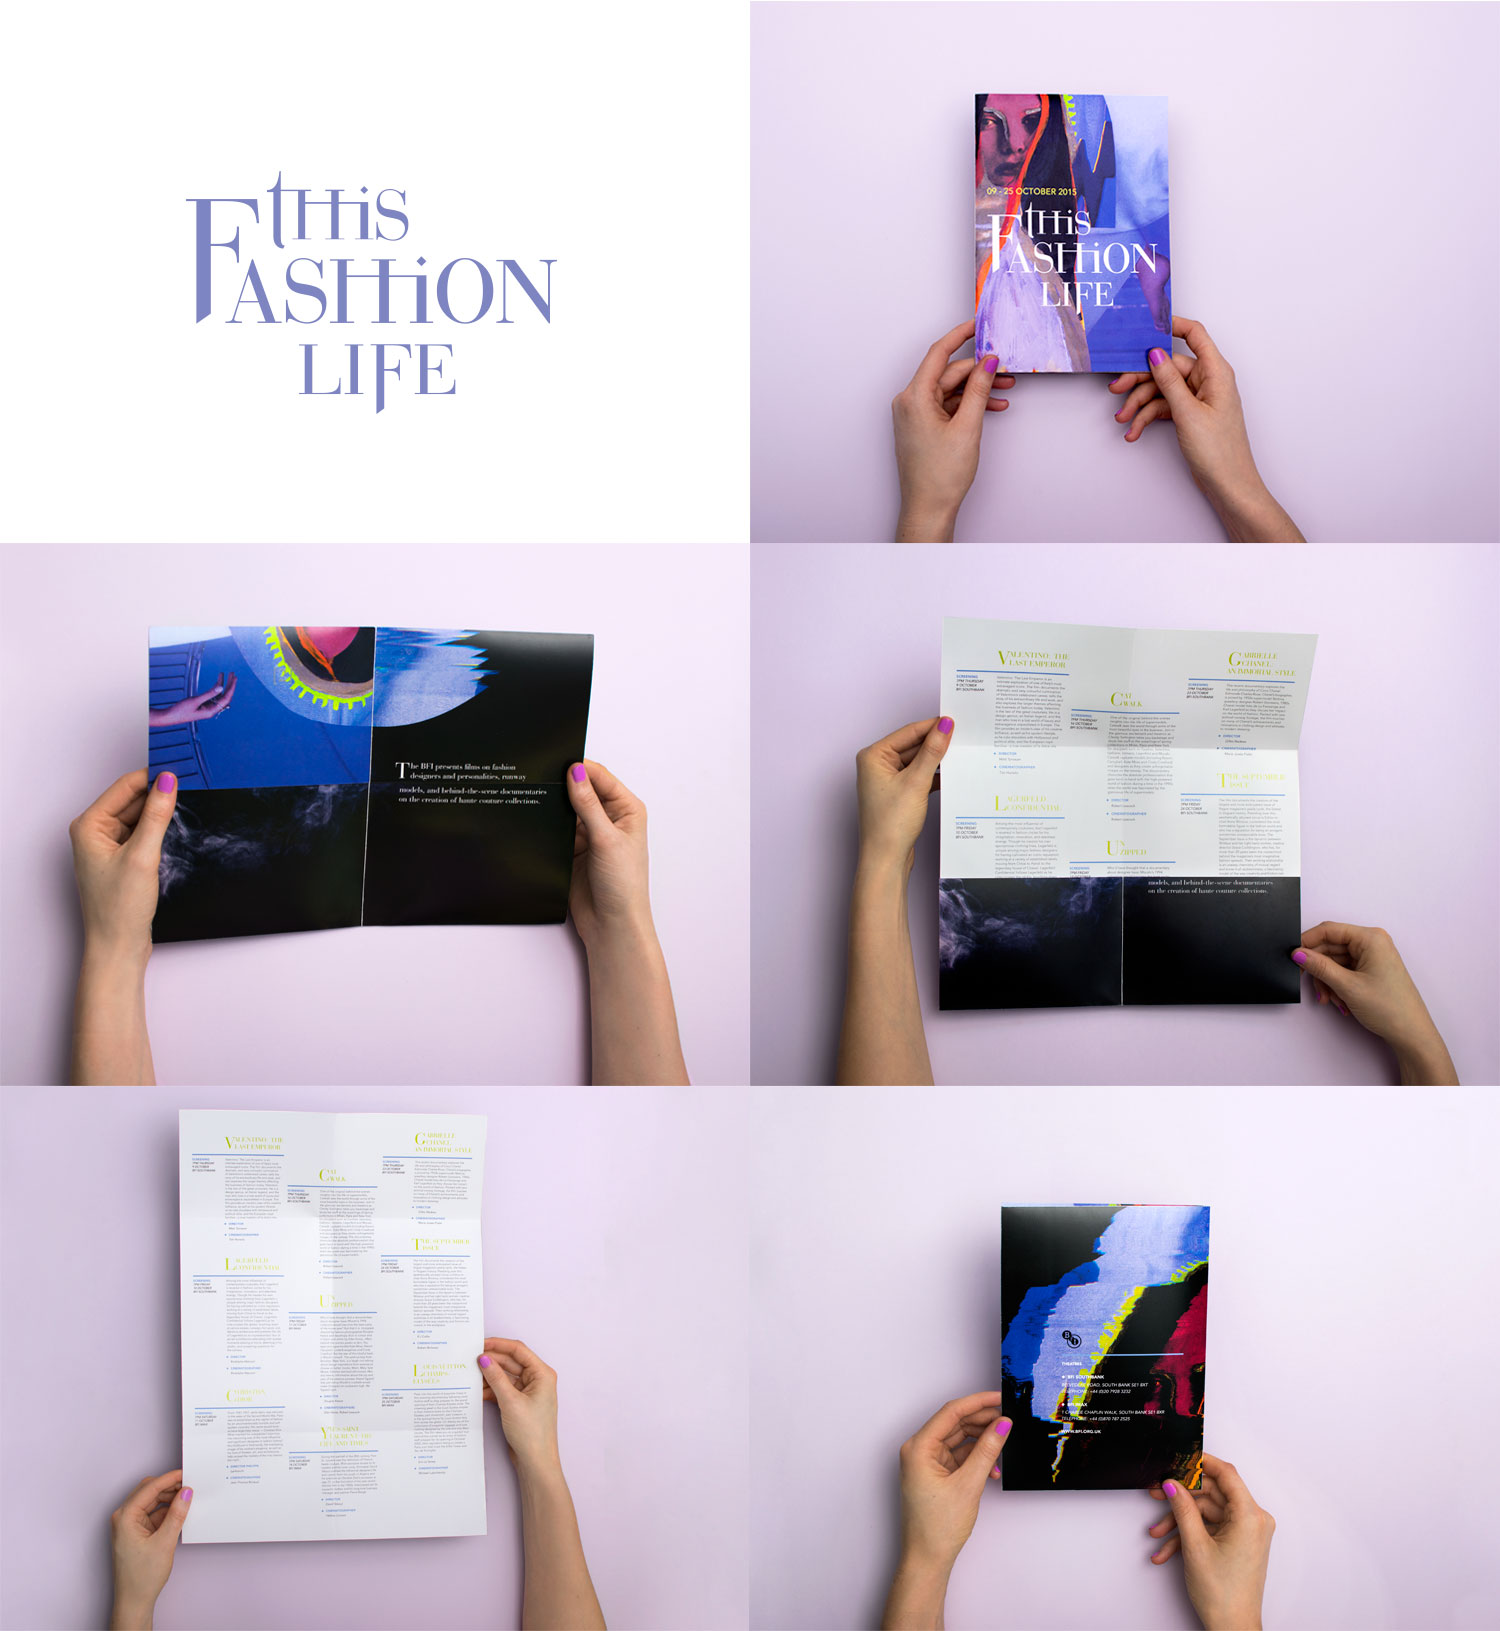 Fashion film festival brochure design and concept, this fashion life, featuring hand painted fashion model and Romeo & Juliet inspired typography, brochure fold displayed.